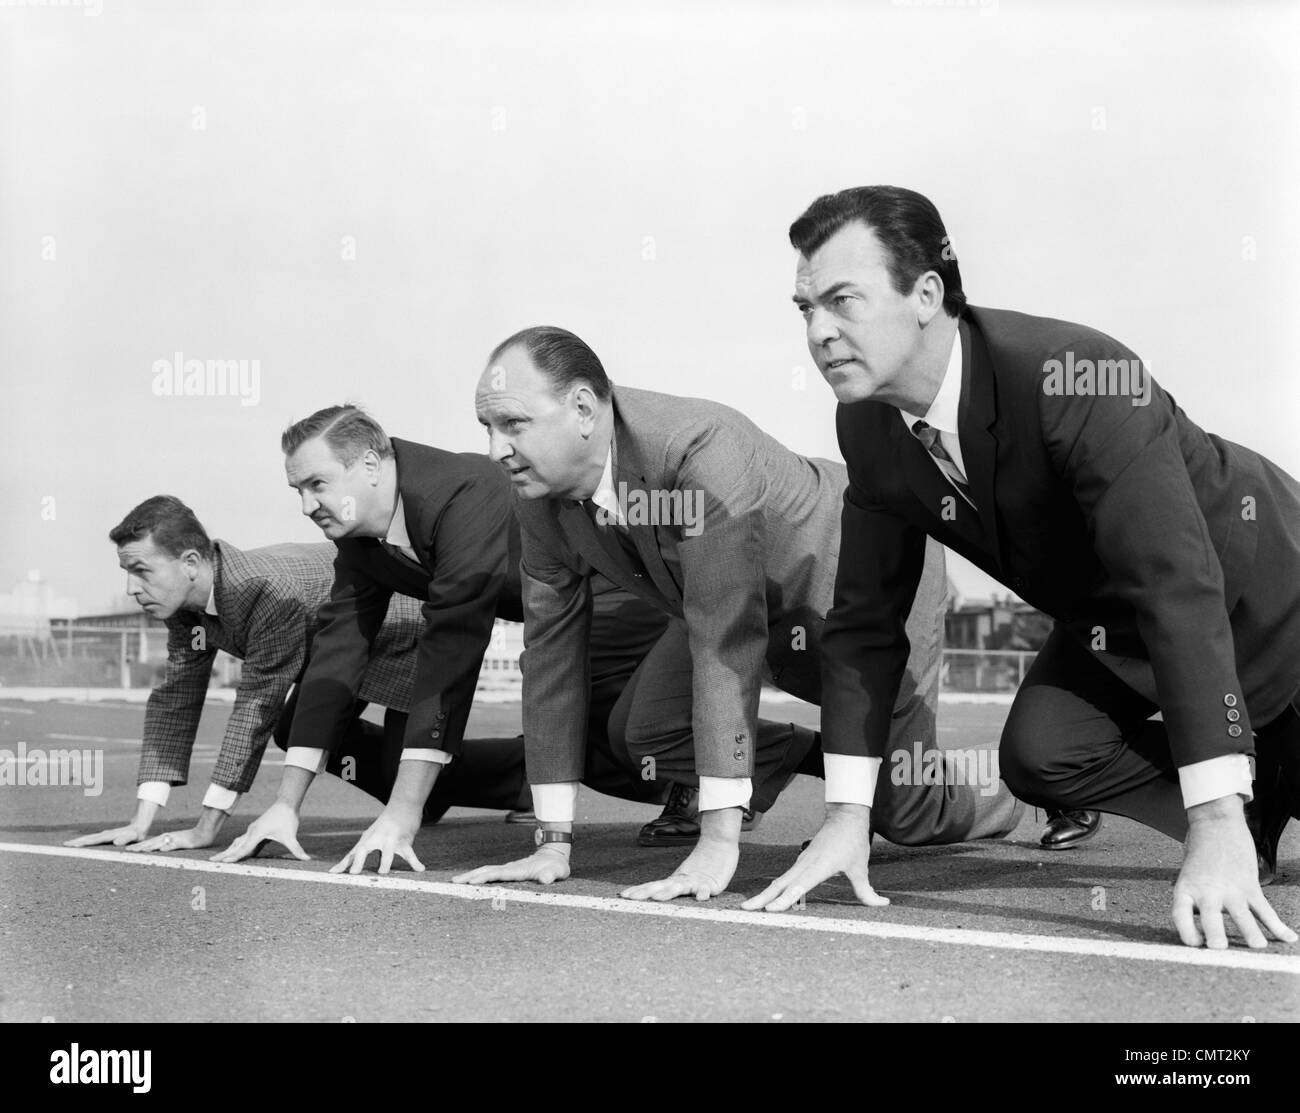 1960s FOUR BUSINESSMEN ON THE STARTING LINE - Stock Image